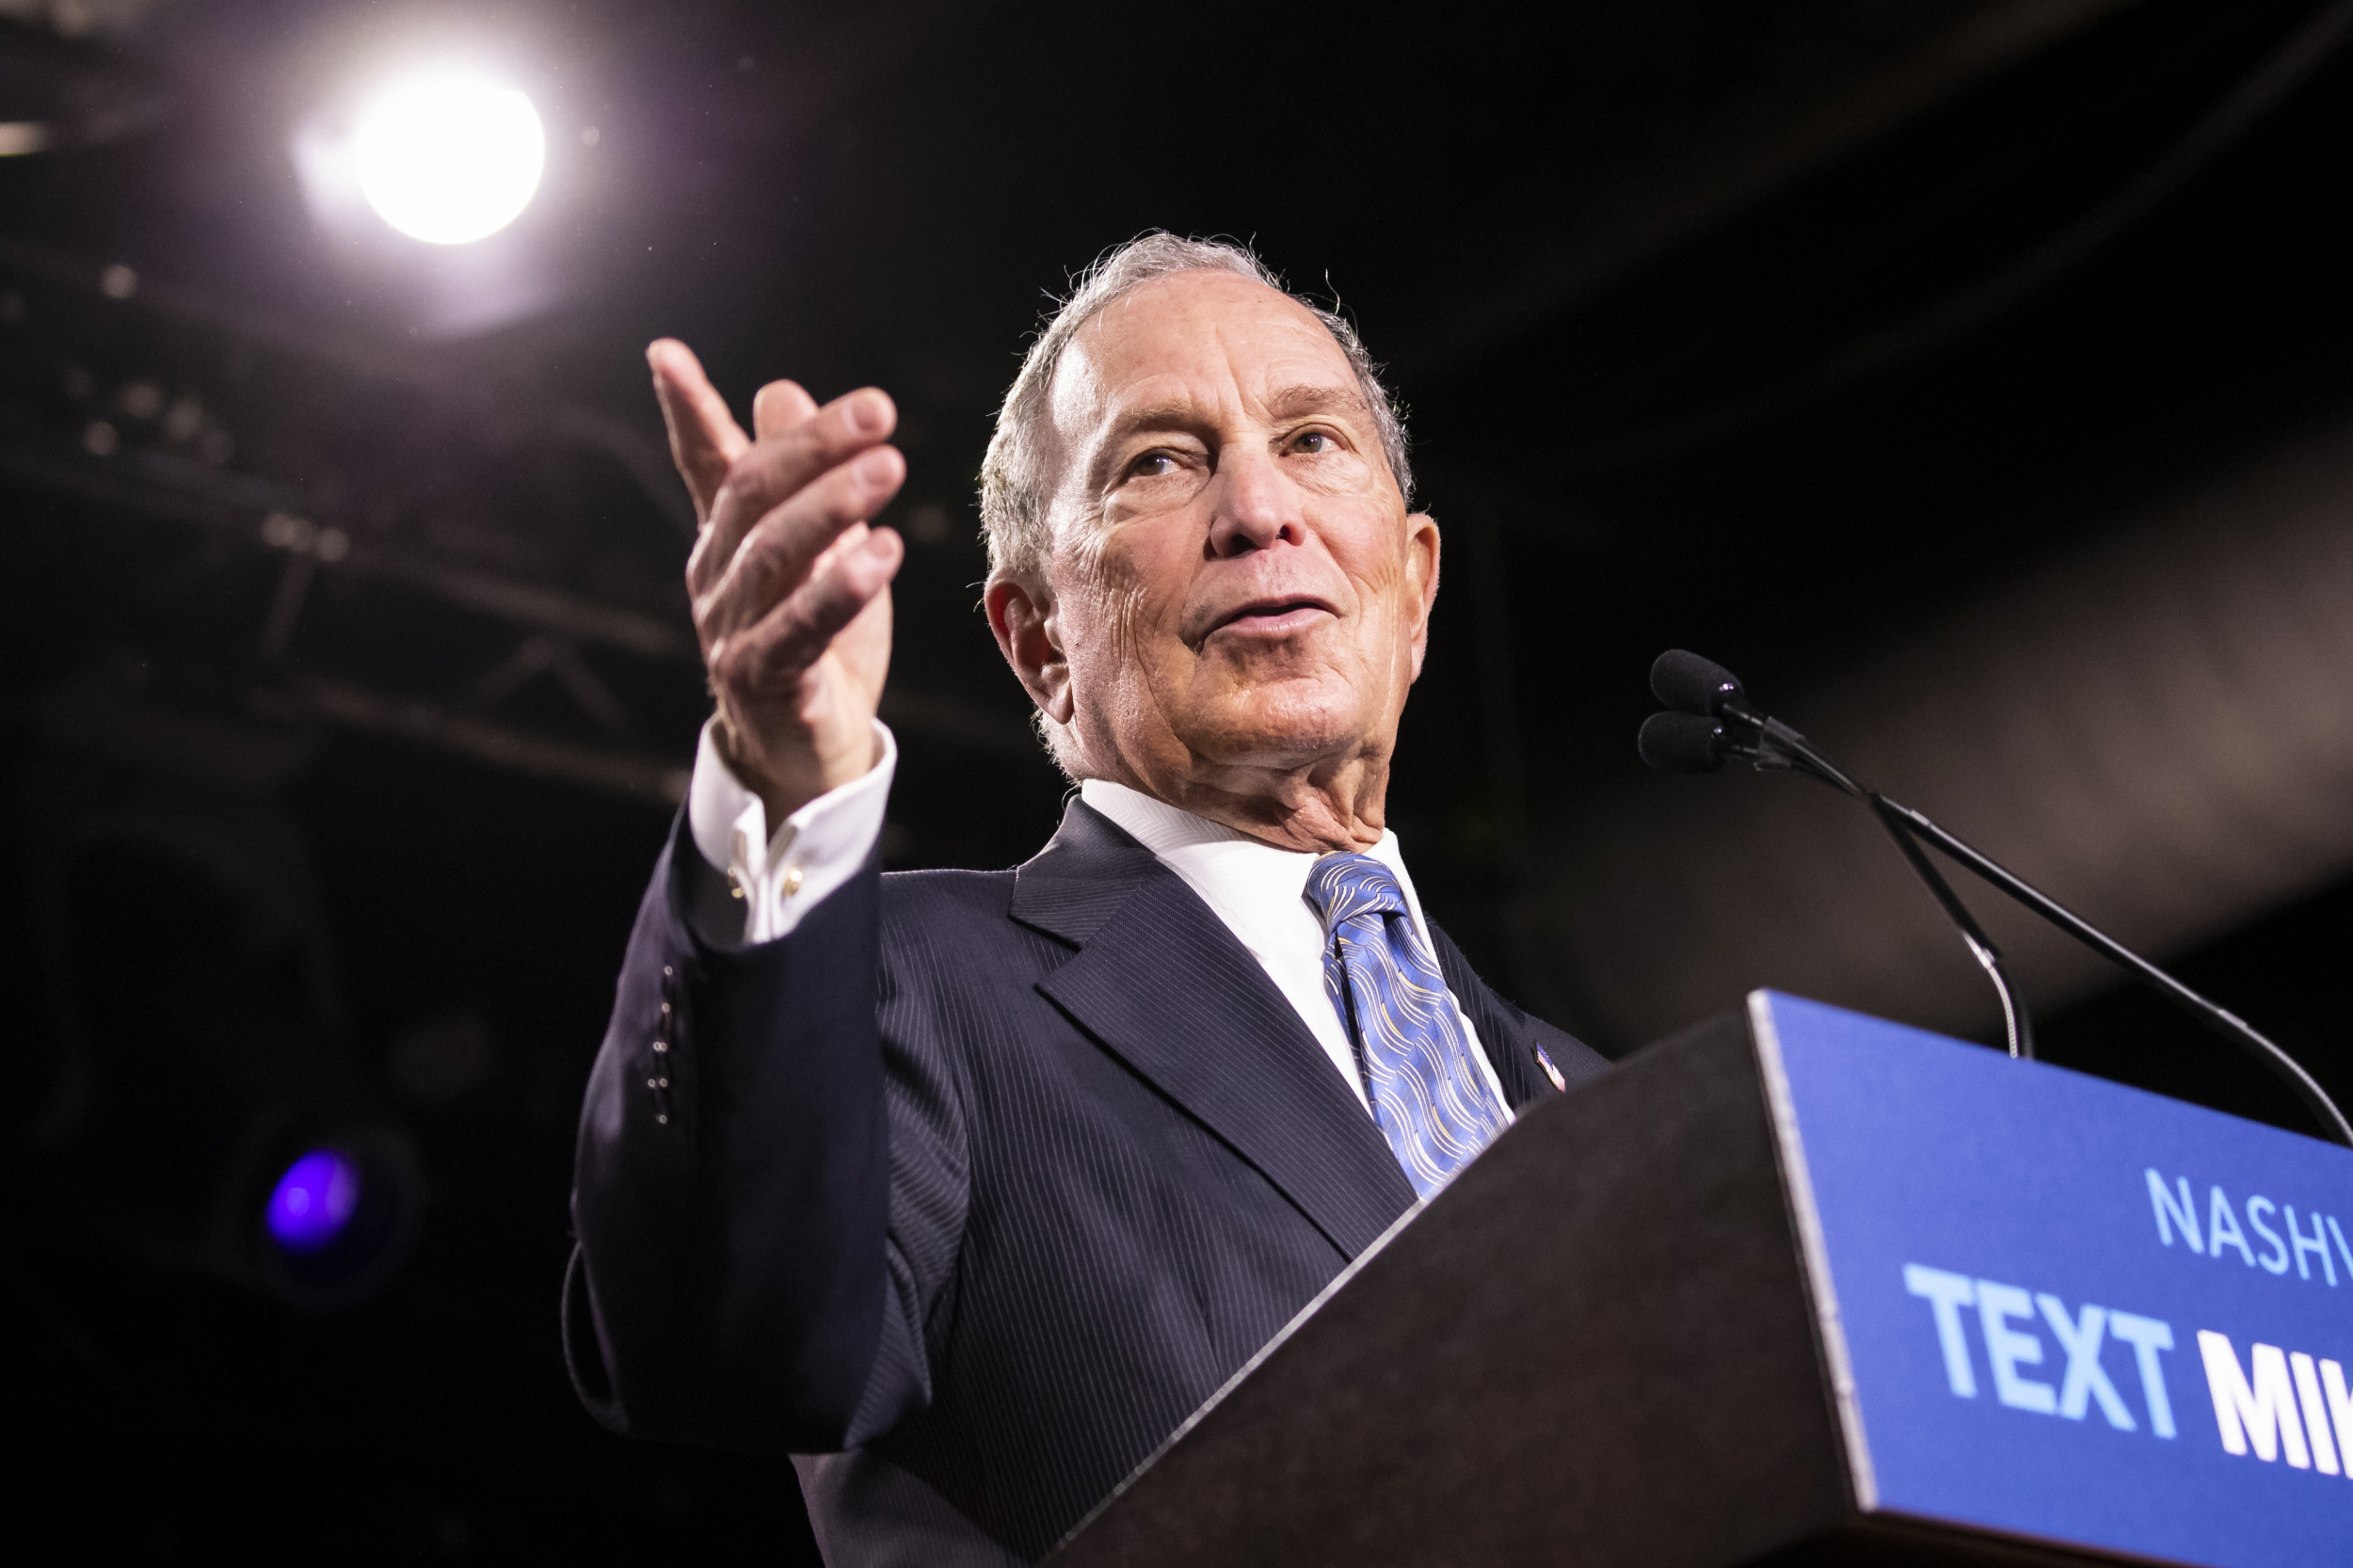 Mike Bloomberg S Elitist Farming Comments Could Be The Hillary Clinton Deplorables Moment That Poses The Biggest Threat To His Campaign